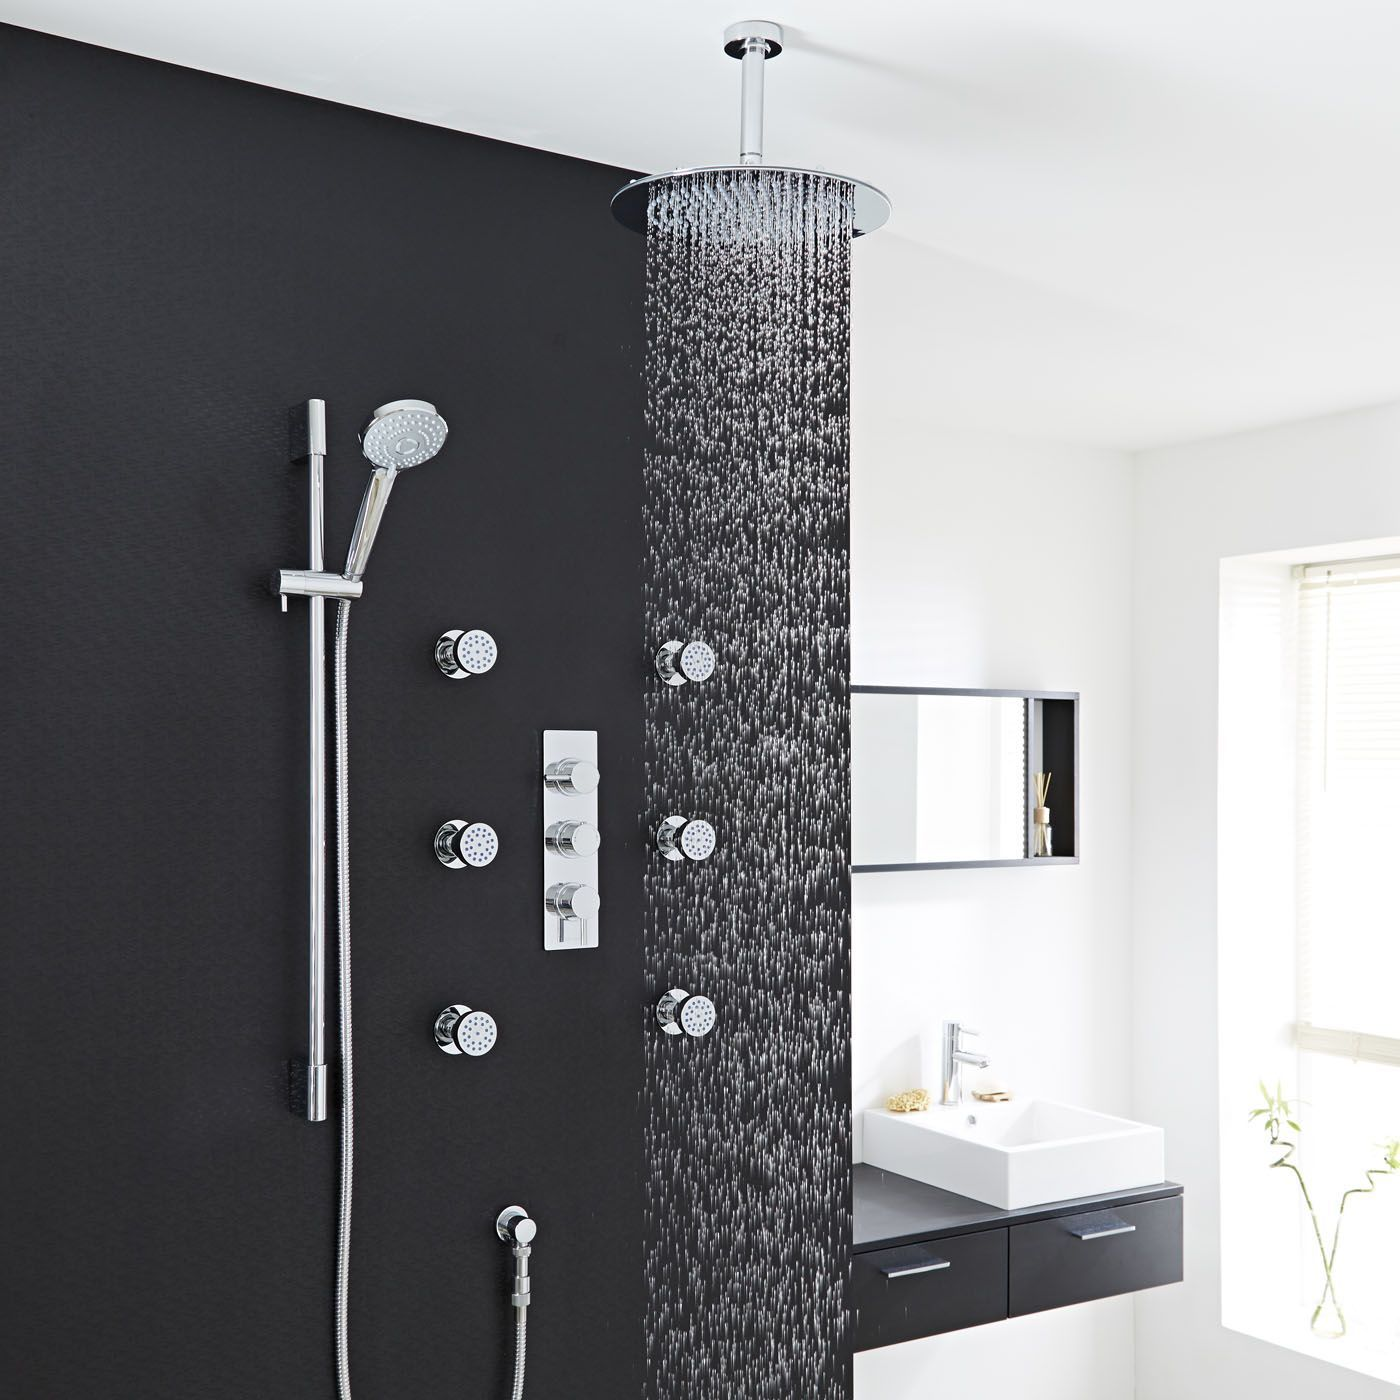 thermostatic shower system with multi function hand shower. Black Bedroom Furniture Sets. Home Design Ideas